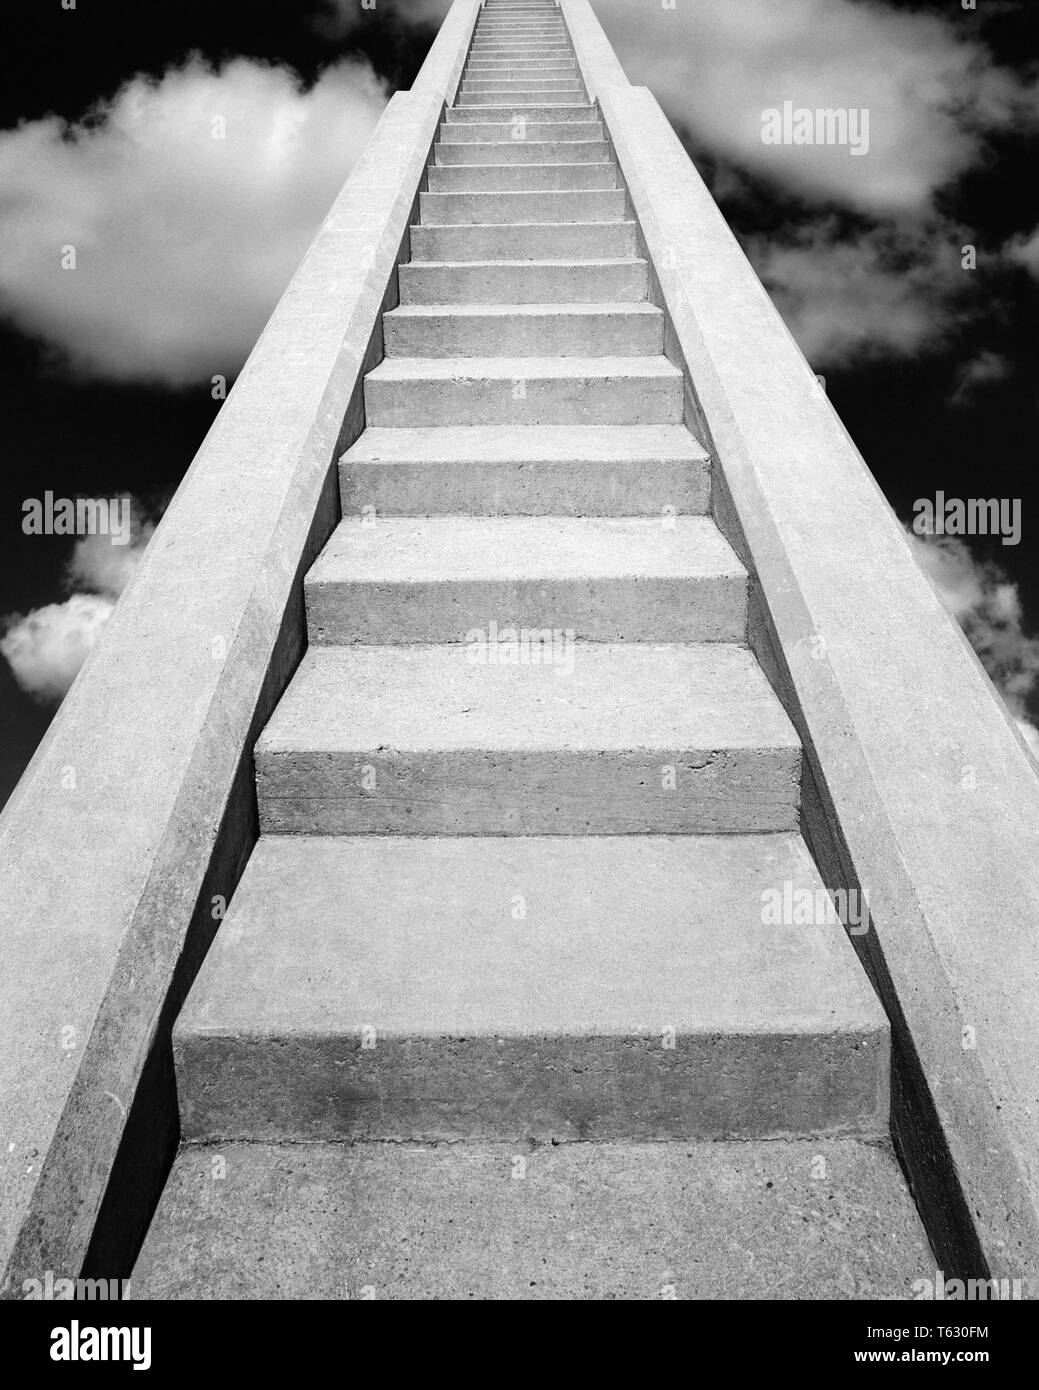 1960s VIEW AT BOTTOM OF SET OF CONCRETE STAIRS LOOKING UP TO THE TOP INTO THE CLOUDS THE HEAVENS THE SKY - s14723b HAR001 HARS CHOICE COMPOSITE EXTERIOR LOW ANGLE STAIR DIRECTION HEAVEN UP STAIRCASE STAIRWAY CONCEPT CONNECTION CONCEPTUAL STILL LIFE PARADISE STEEP STYLISH FAITHFUL SYMBOLIC CONCEPTS FAITH IDEAS LOOKING  UP REWARD BELIEF BLACK AND WHITE CONCRETE HAR001 OLD FASHIONED REPRESENTATION - Stock Image